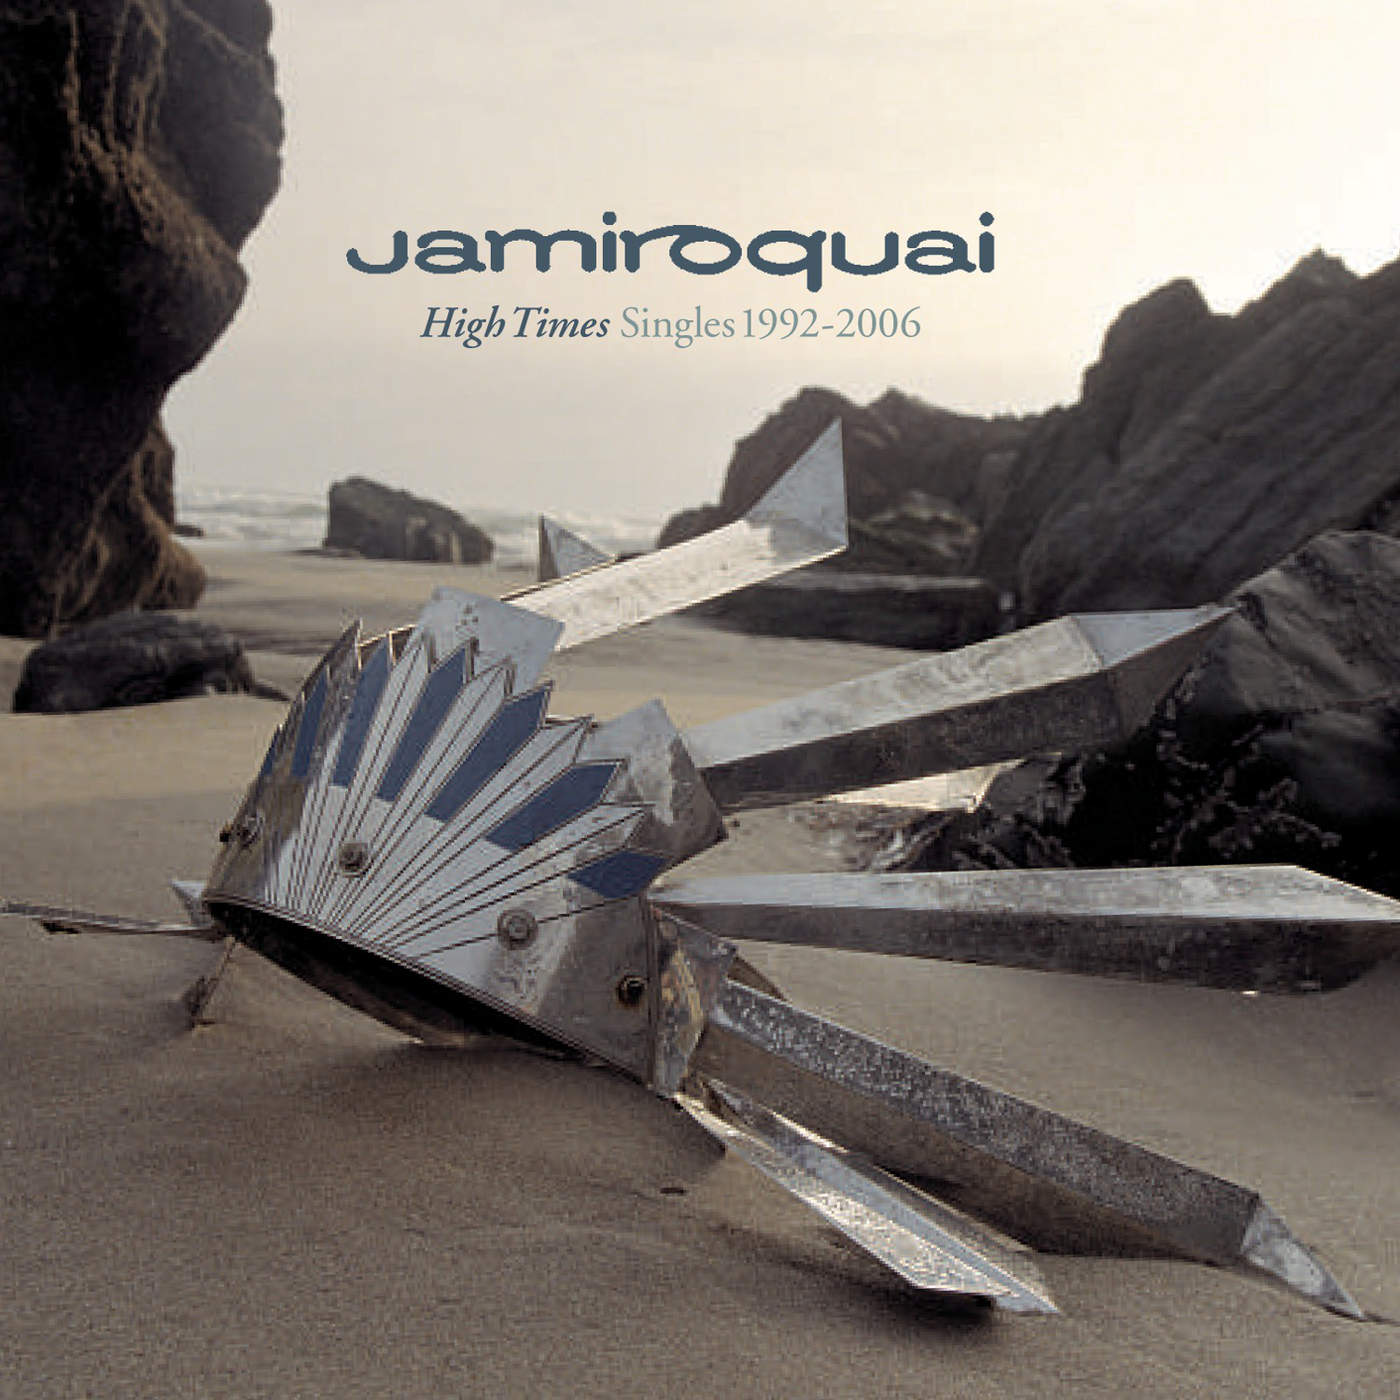 Virtual Insanity (Remastered) by Jamiroquai